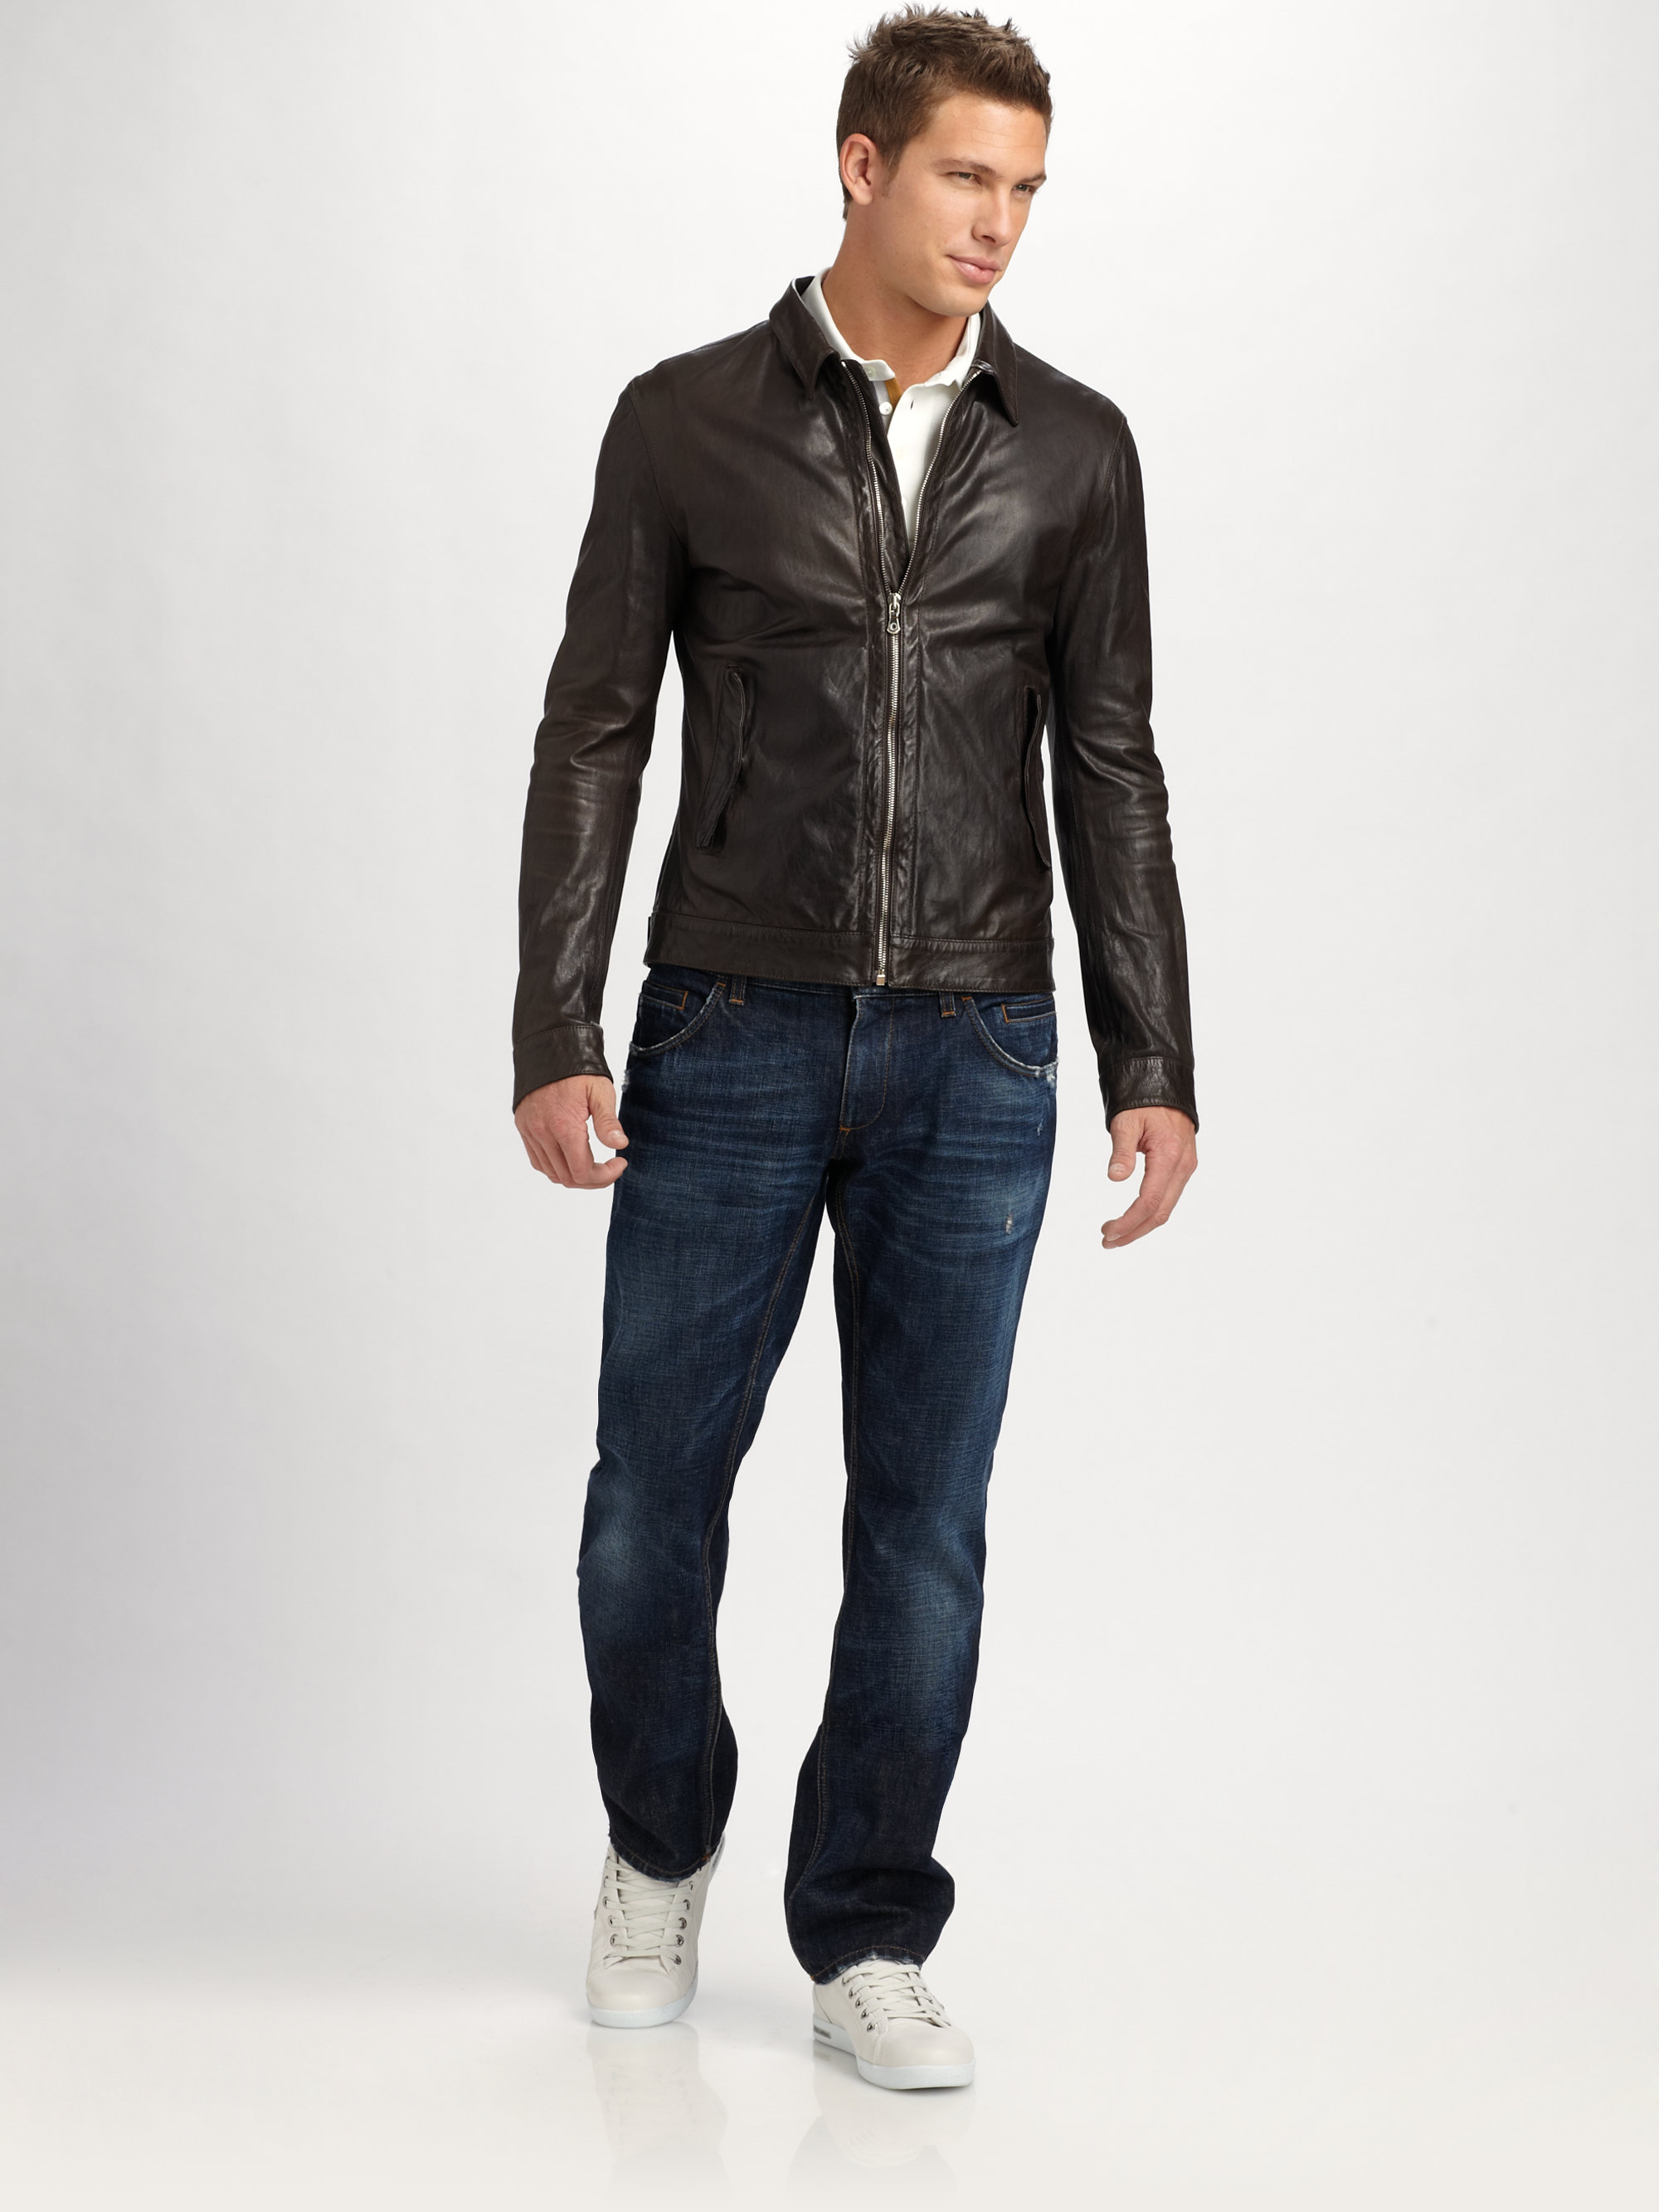 Dolce Amp Gabbana Washed Leather Jacket In Brown For Men Lyst